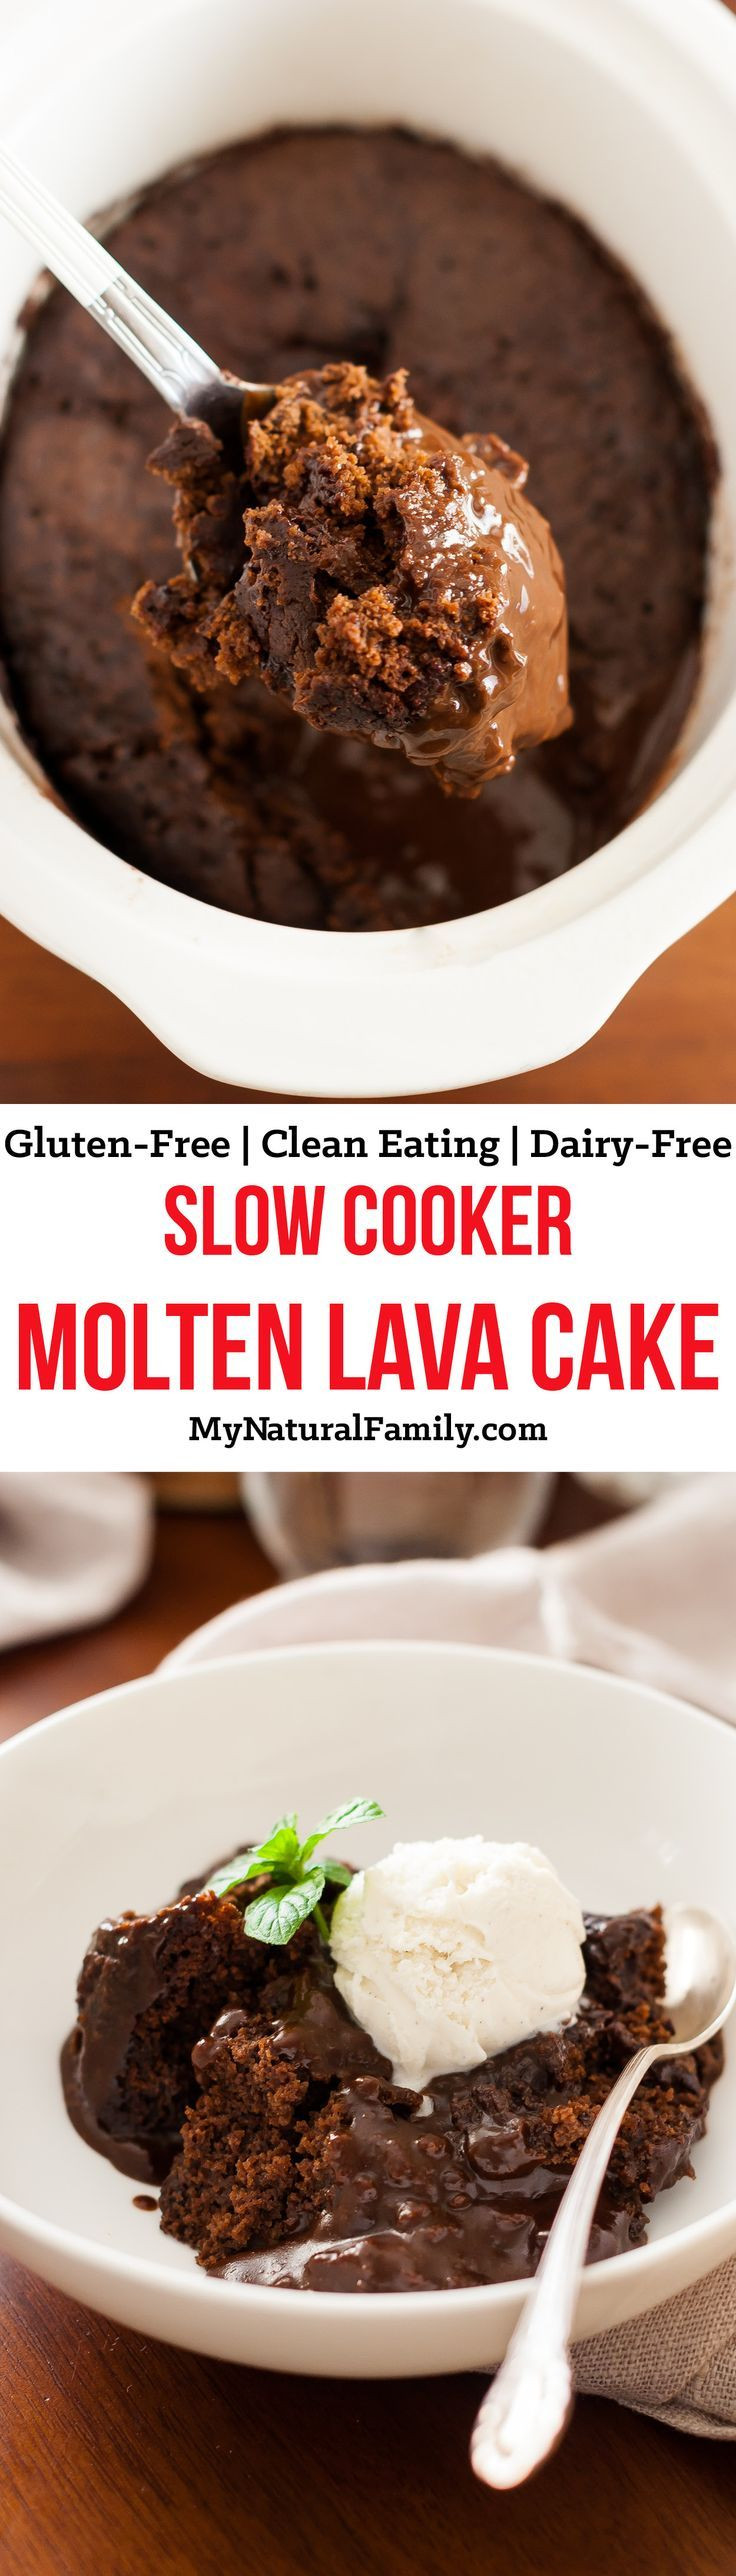 Gluten Free Dairy Free Slow Cooker Recipes  1849 best images about Best Crock pot Recipes on Pinterest